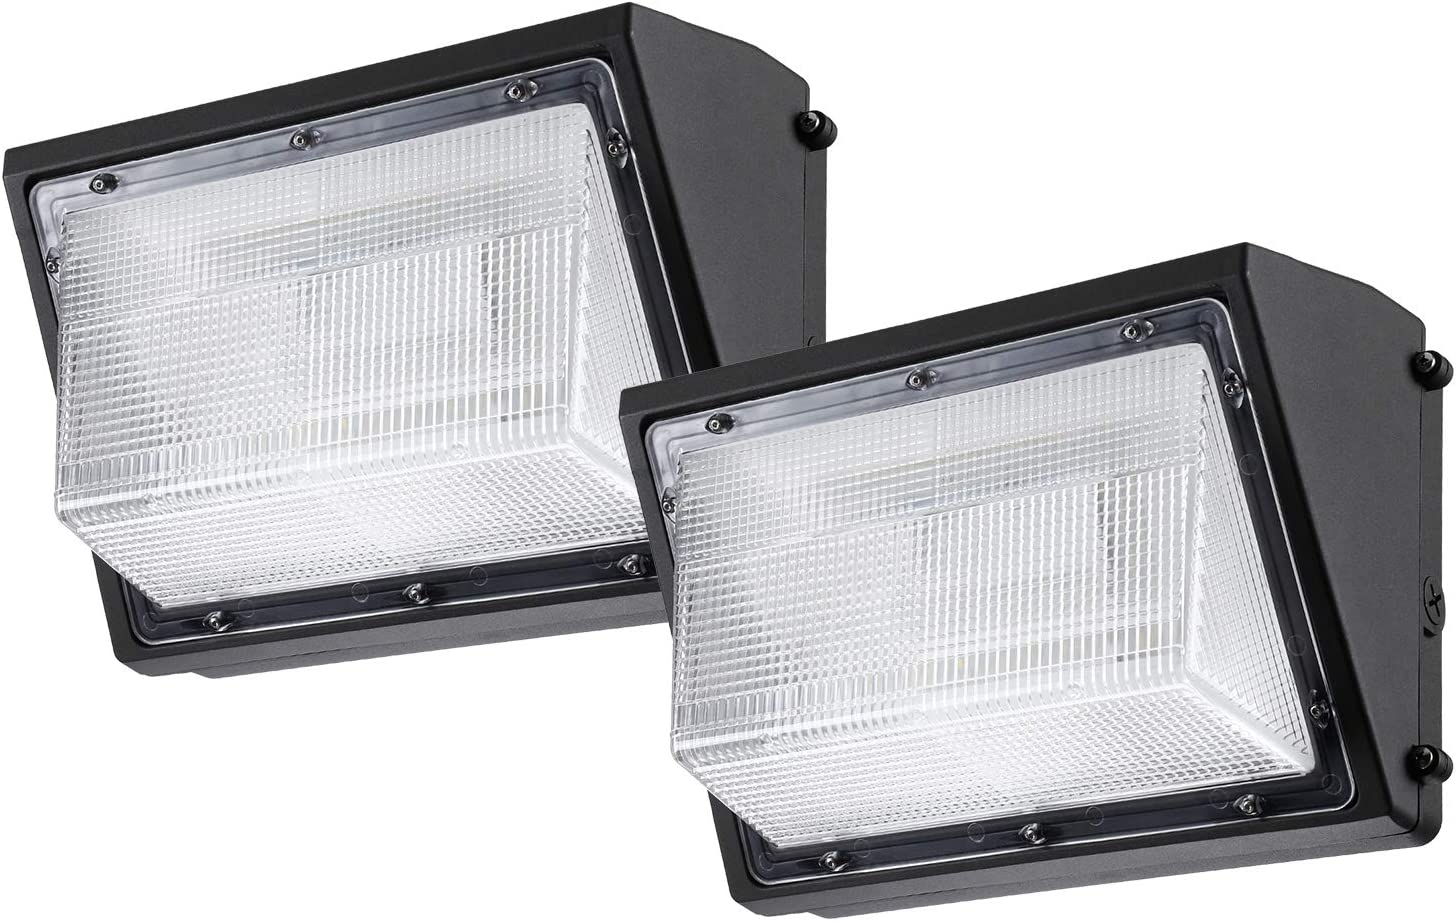 Amazon Com Leonlite 80w Led Wall Pack Lights 8900lm Ip65 Waterproof Wall Mount Outdoor Security Lighting Fixture Etl Listed 57000k Pack Of 2 Home Improvement